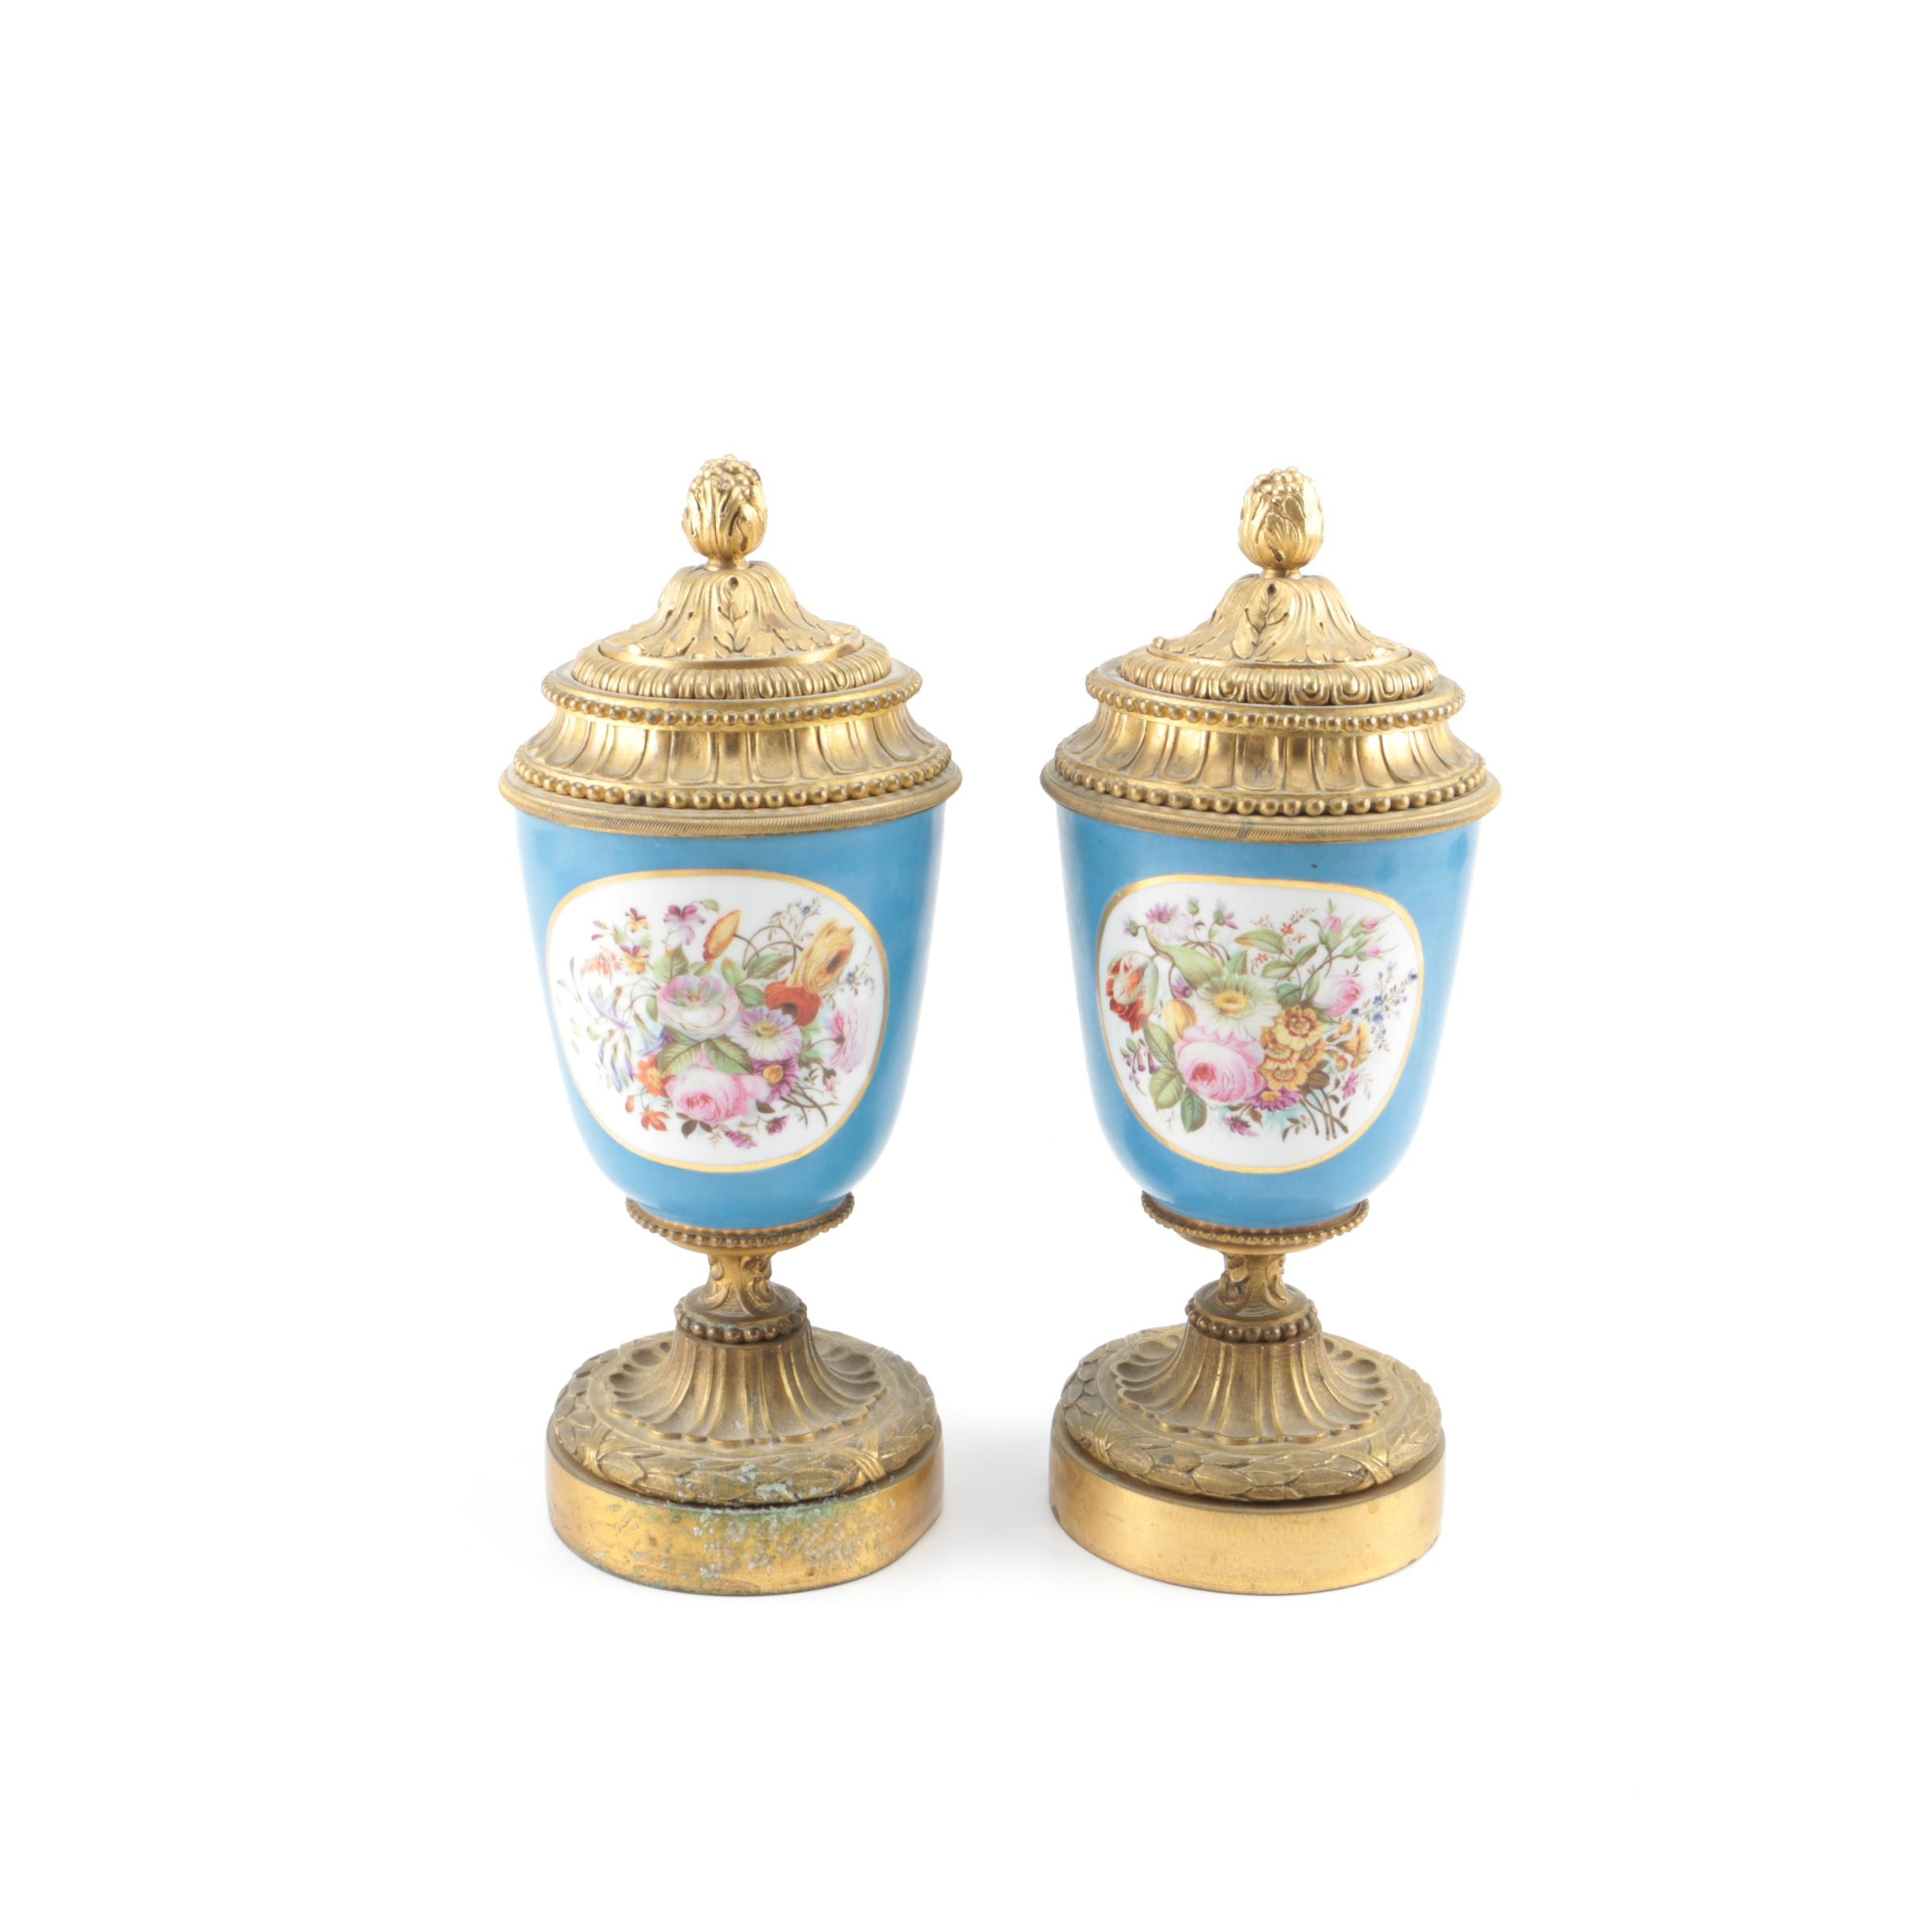 Sèvres Style Ormalu-Mounted Lidded Candle Holders